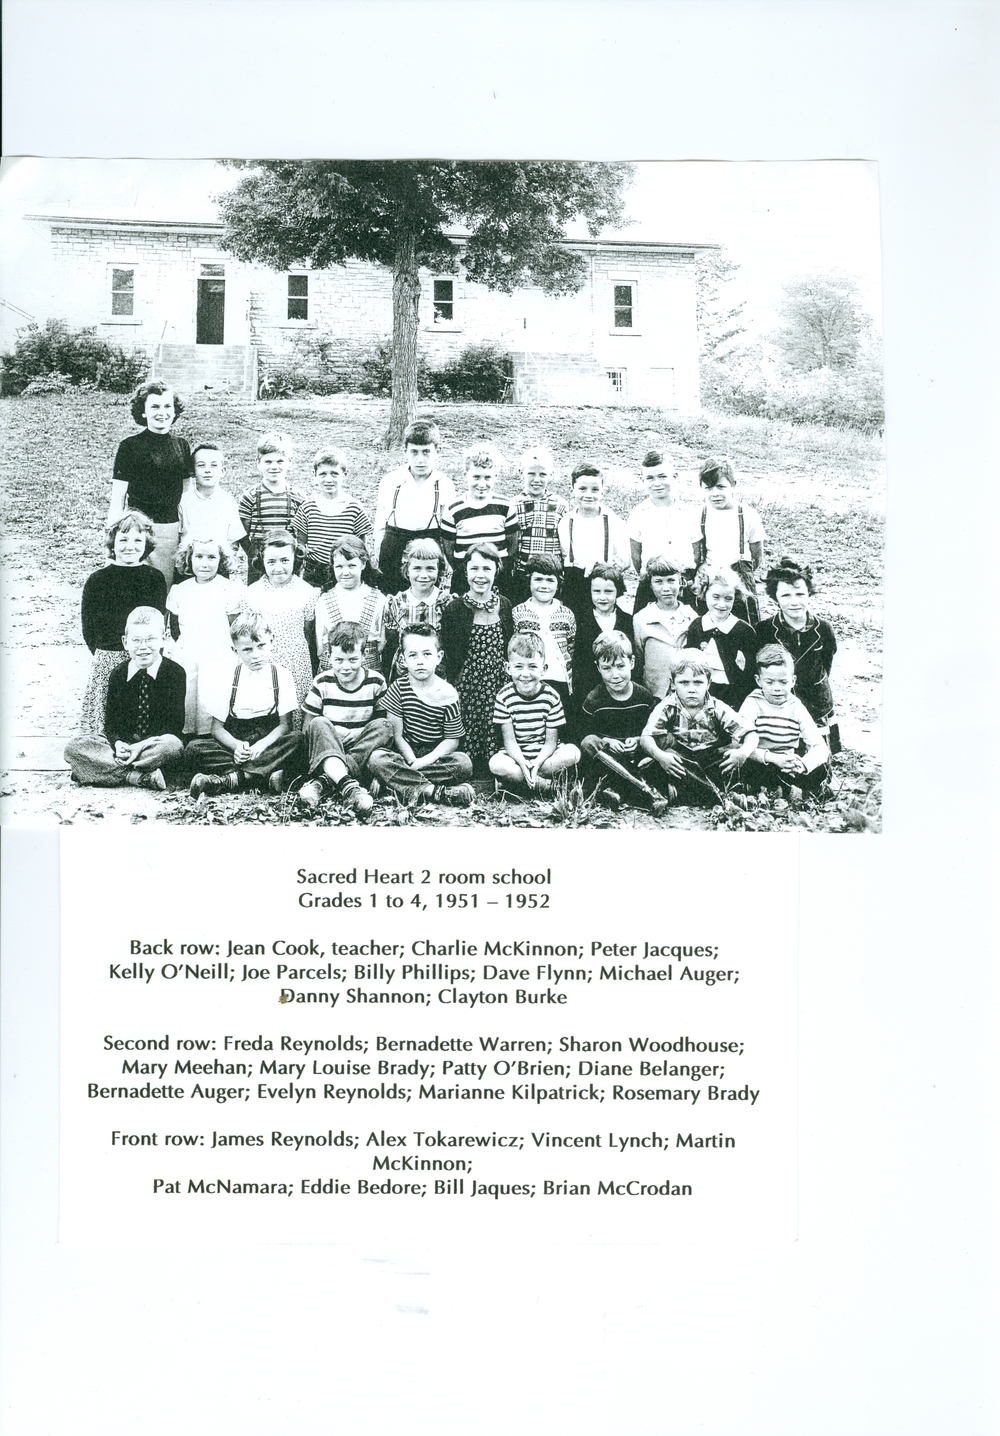 1951-52 Sacred Heart 2 room school.jpg